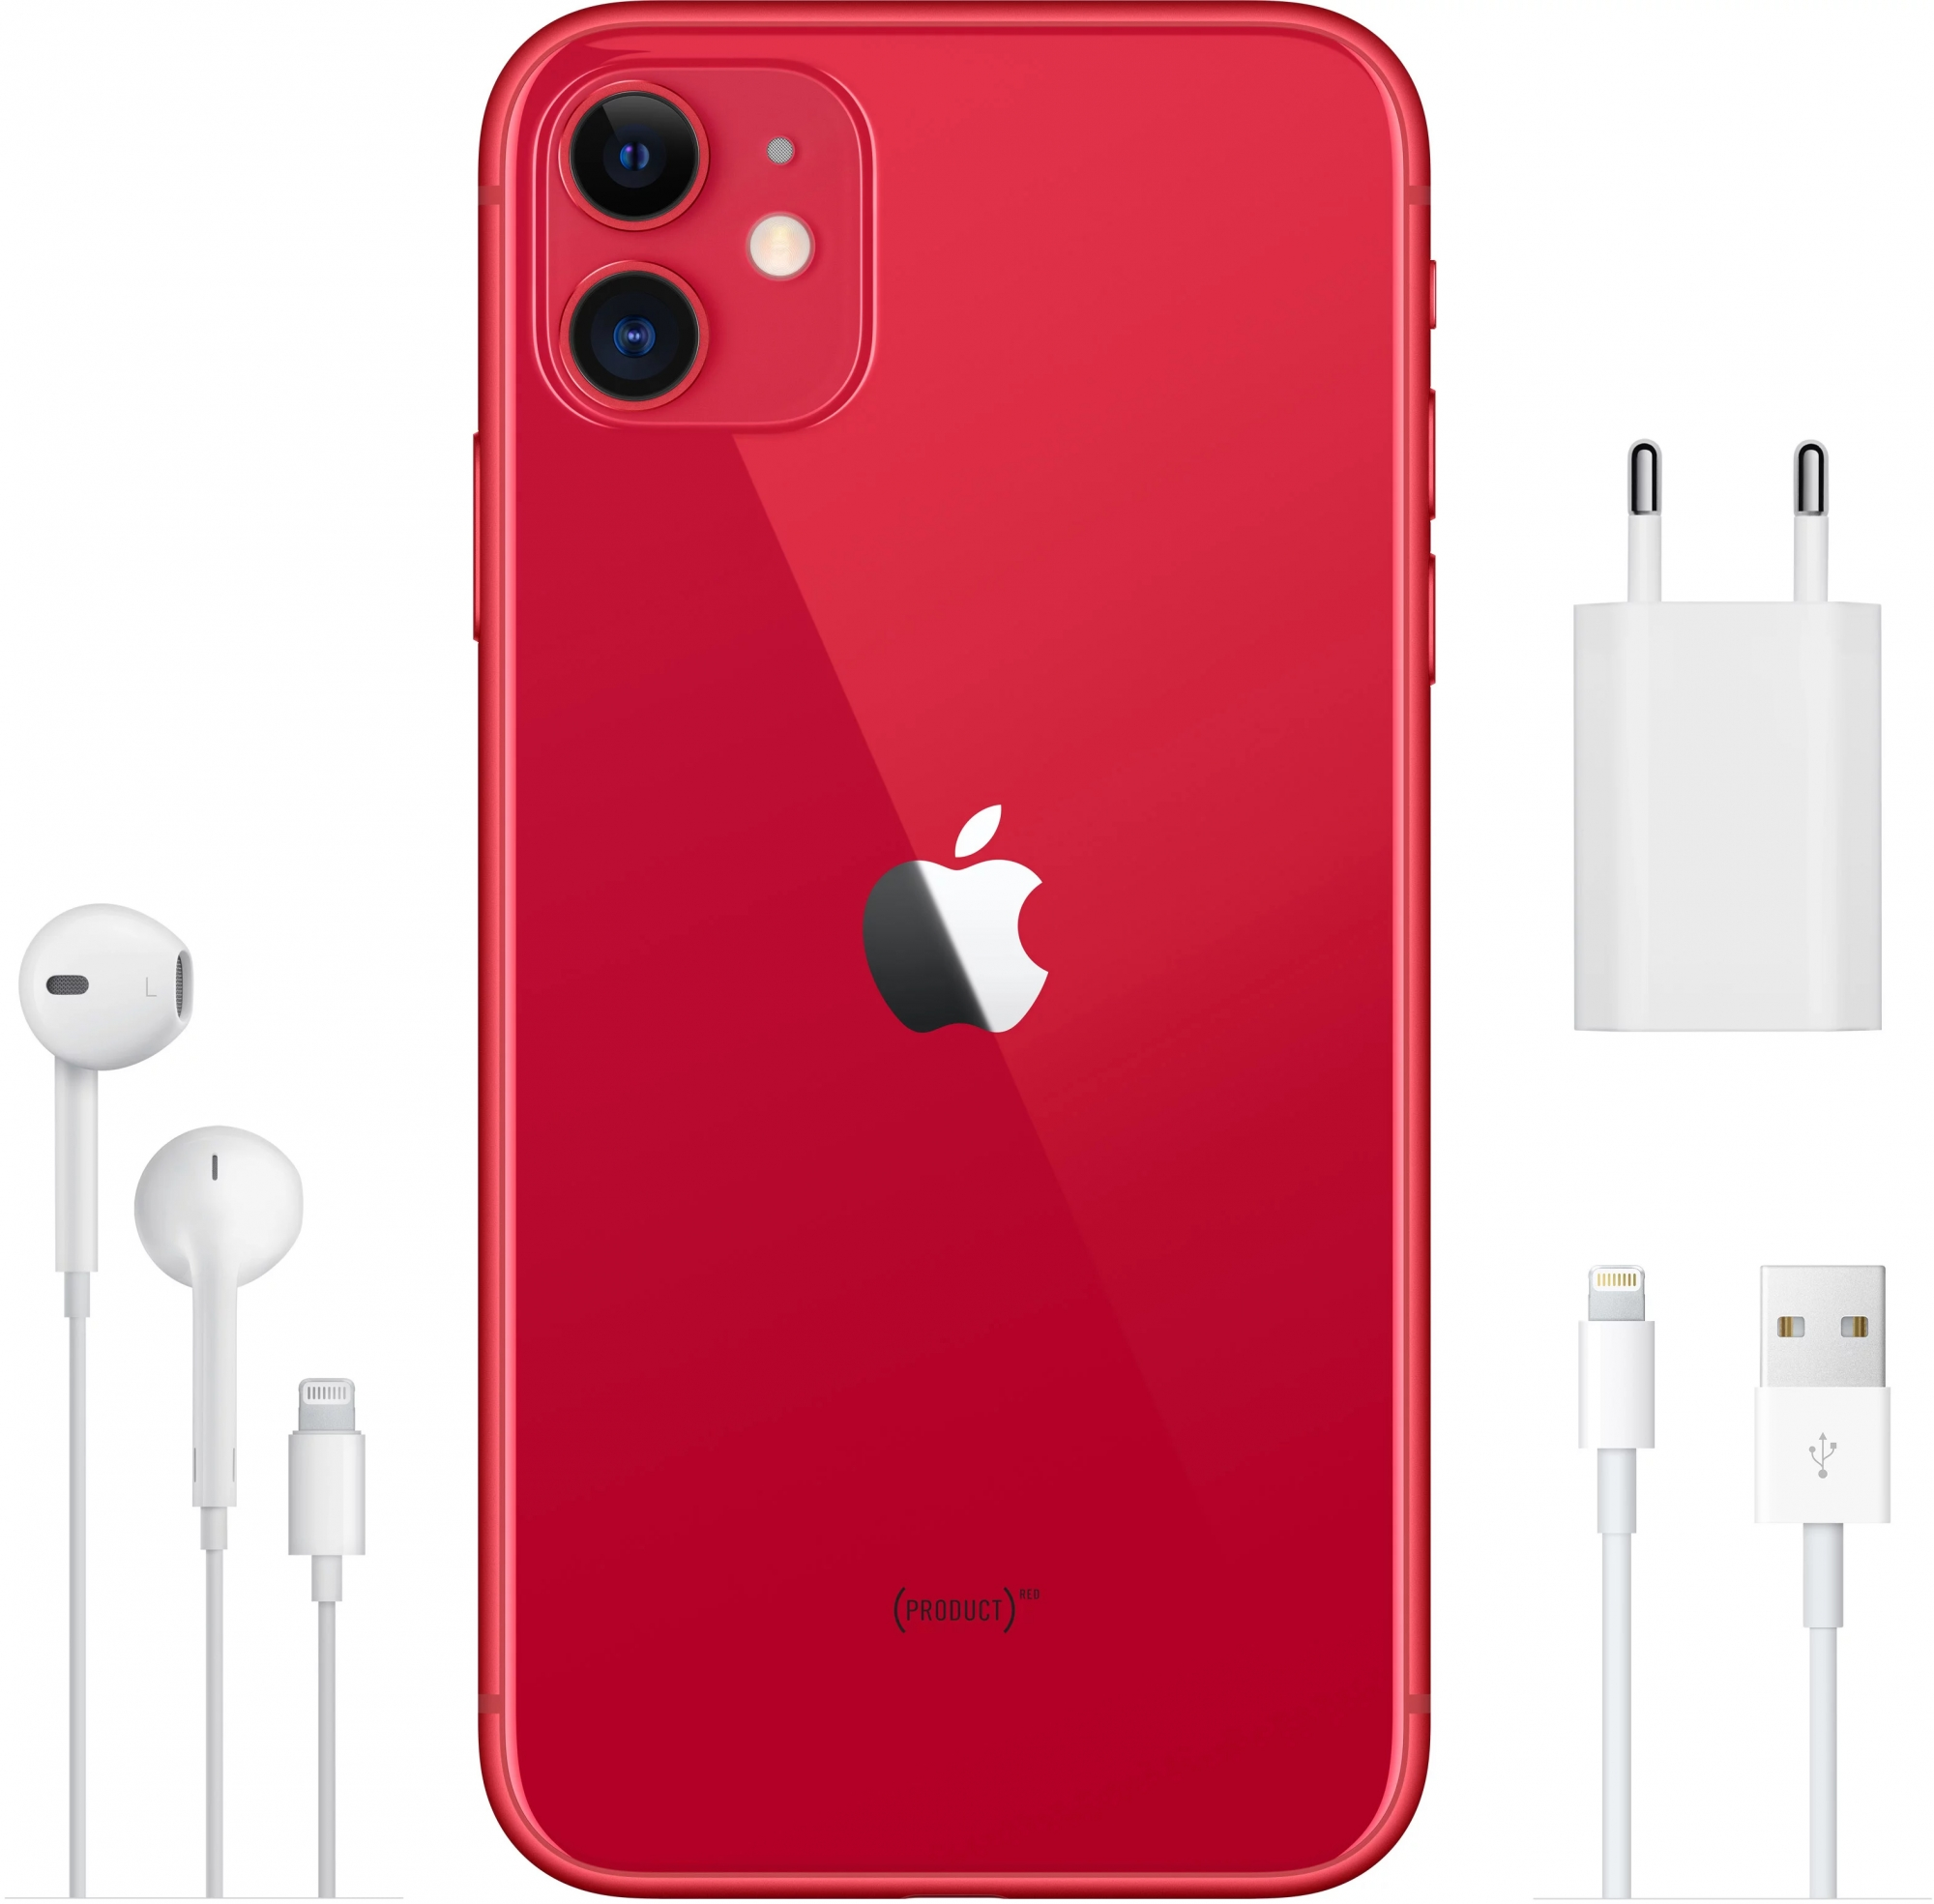 Смартфон Apple iPhone 11 128Gb (PRODUCT) RED (MWM32RU/A)